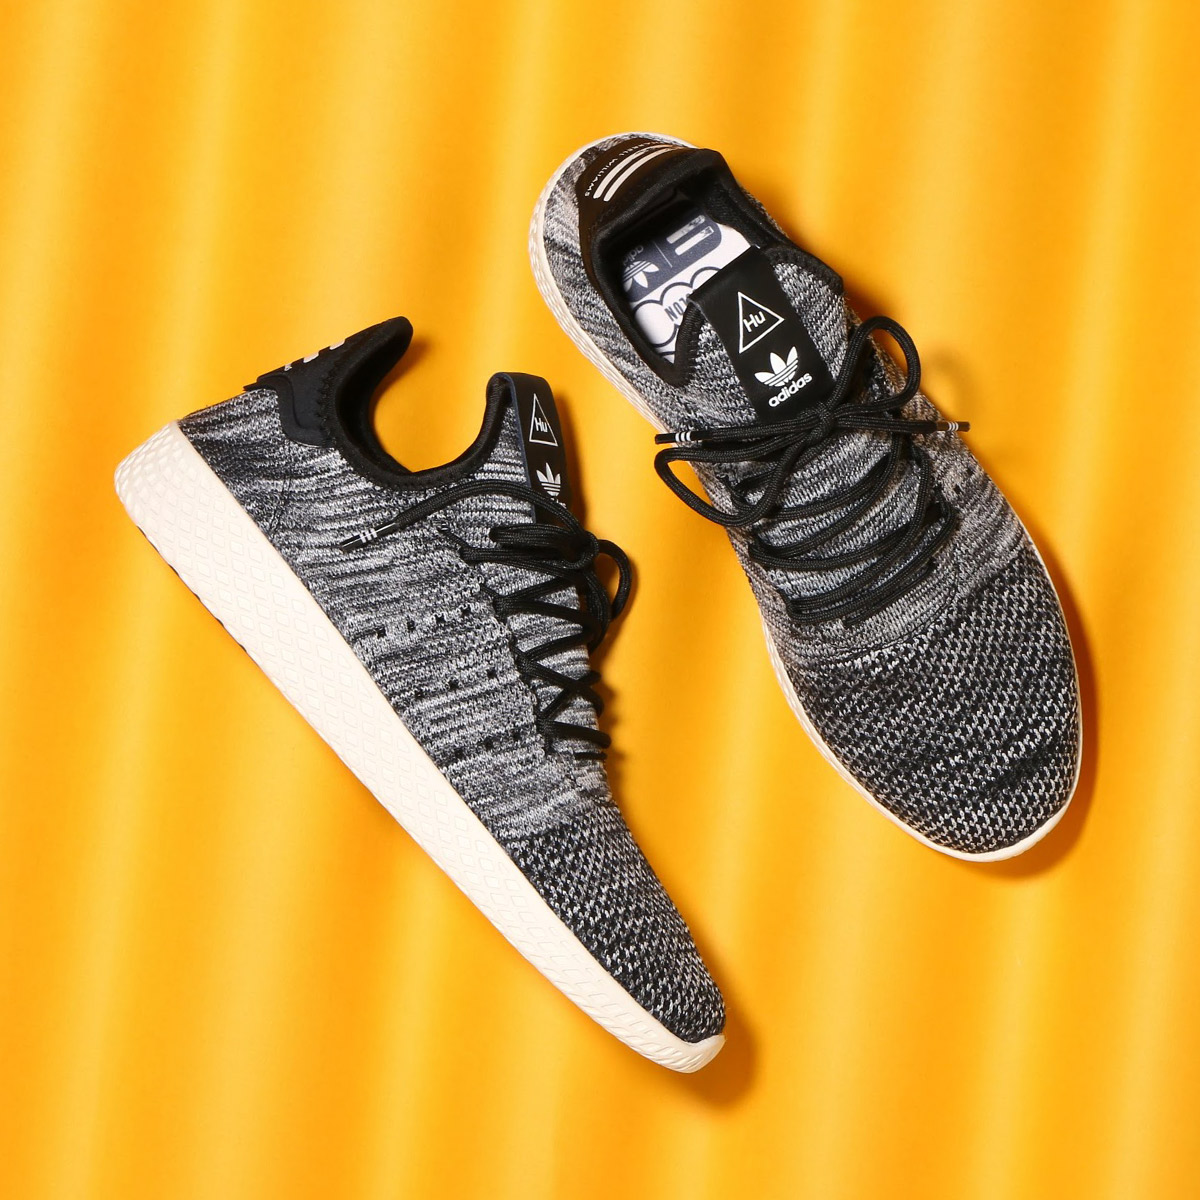 76a1a321cfbea adidas Originals PW TENNIS HU PK (Adidas originals Farrell Williams tennis  HU PK) Chalk White   Core Black   Running White 18SP-S